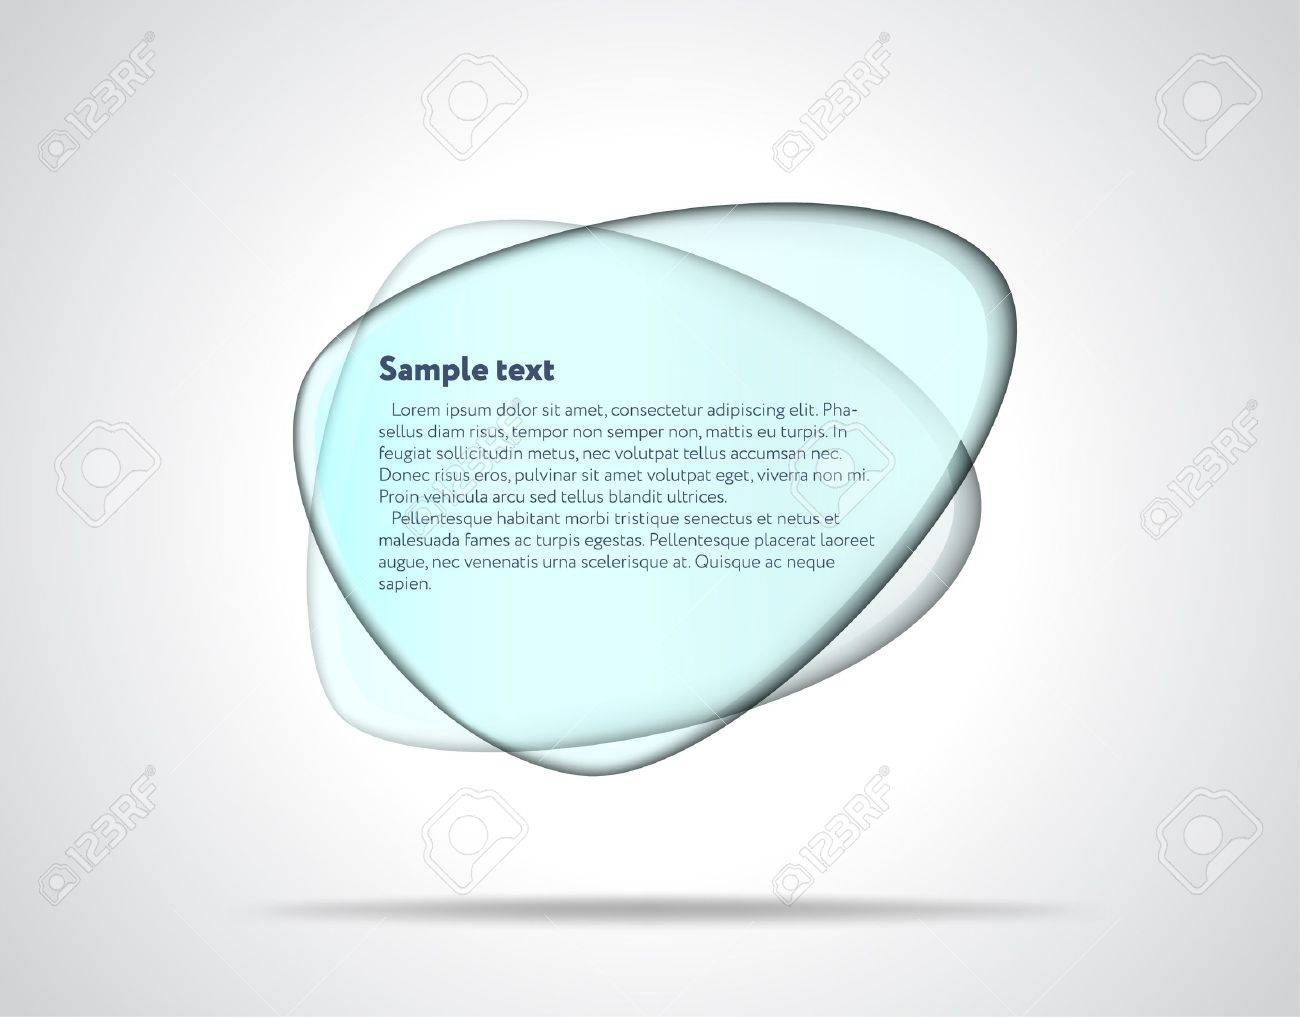 Smooth glass plates Stock Vector - 12398555